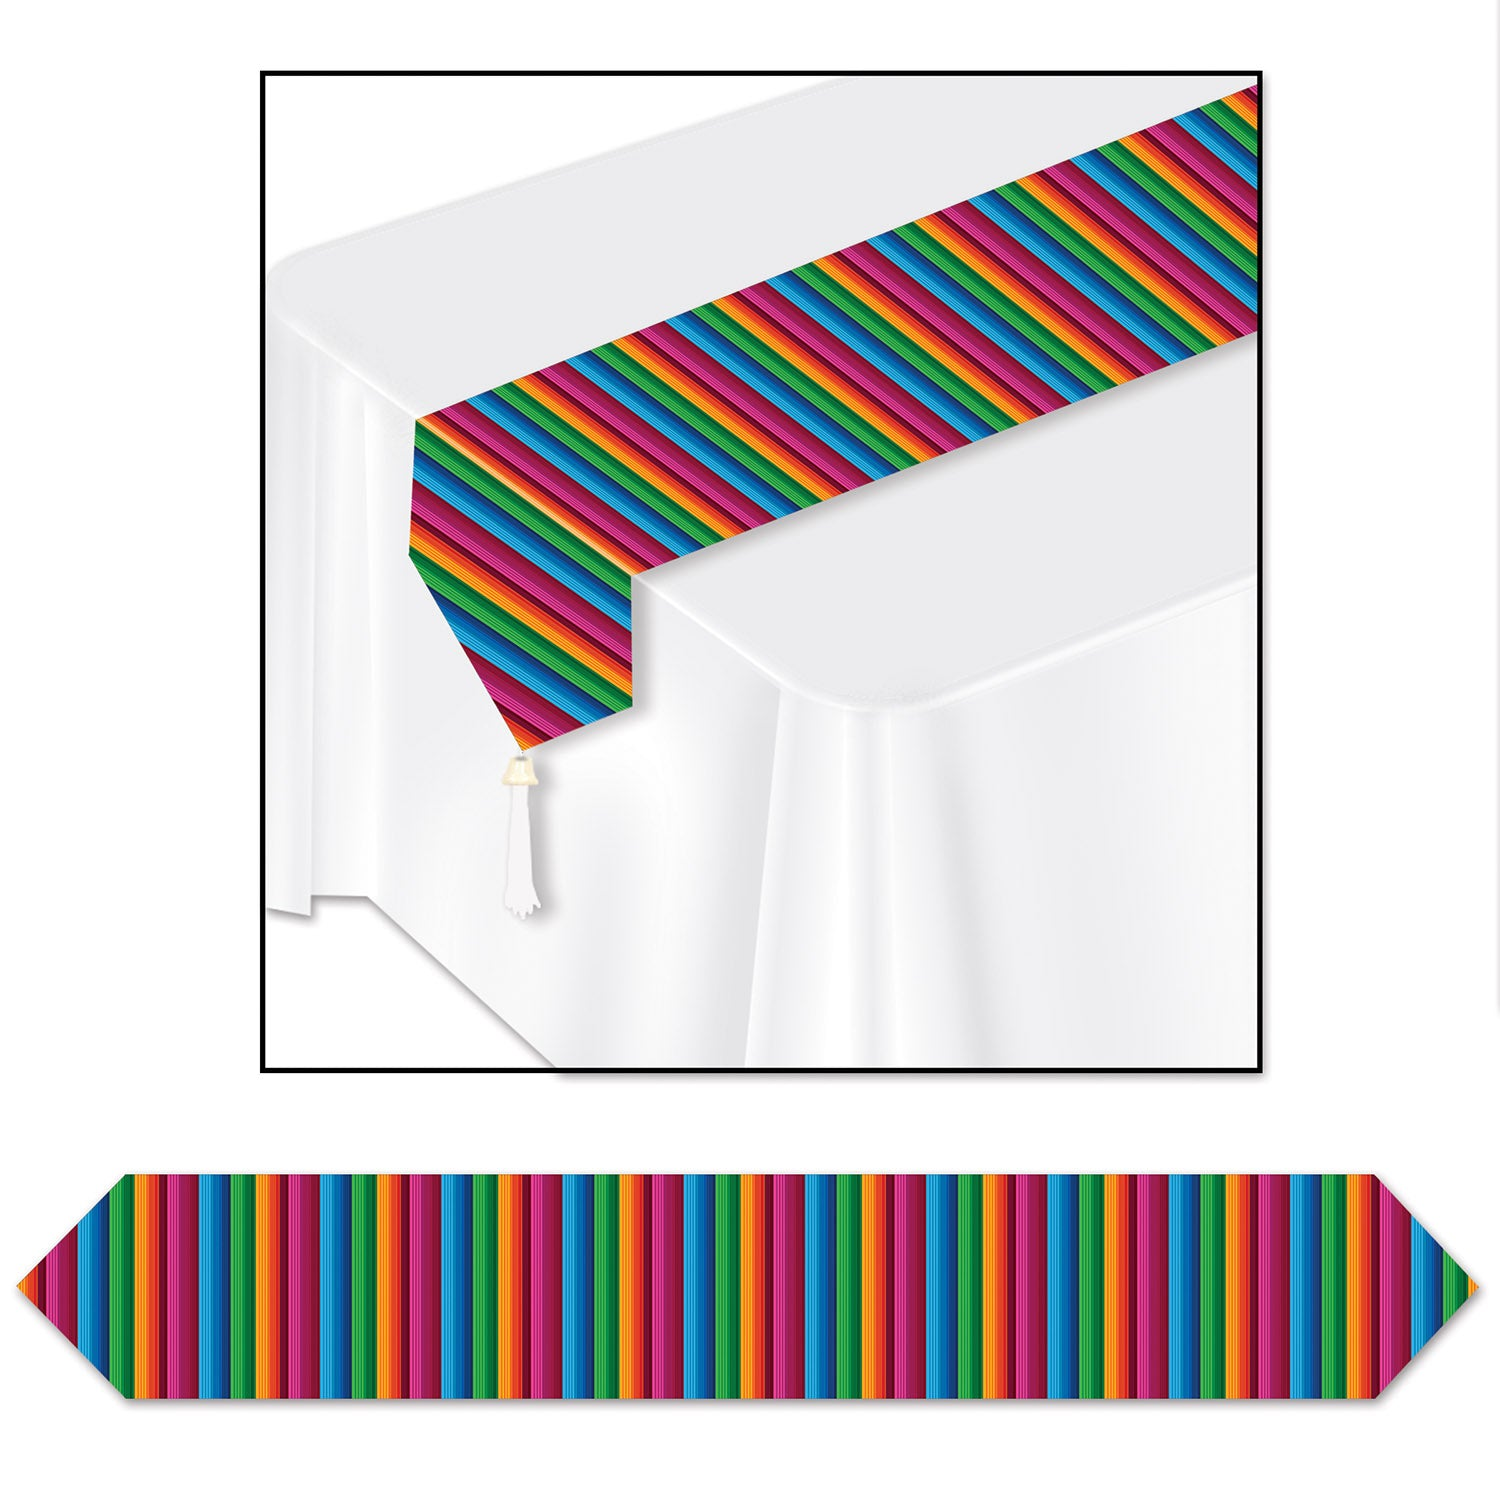 Printed Fiesta Table Runner by Beistle - Cinco de Mayo and Fiesta Party Supplies Decorations